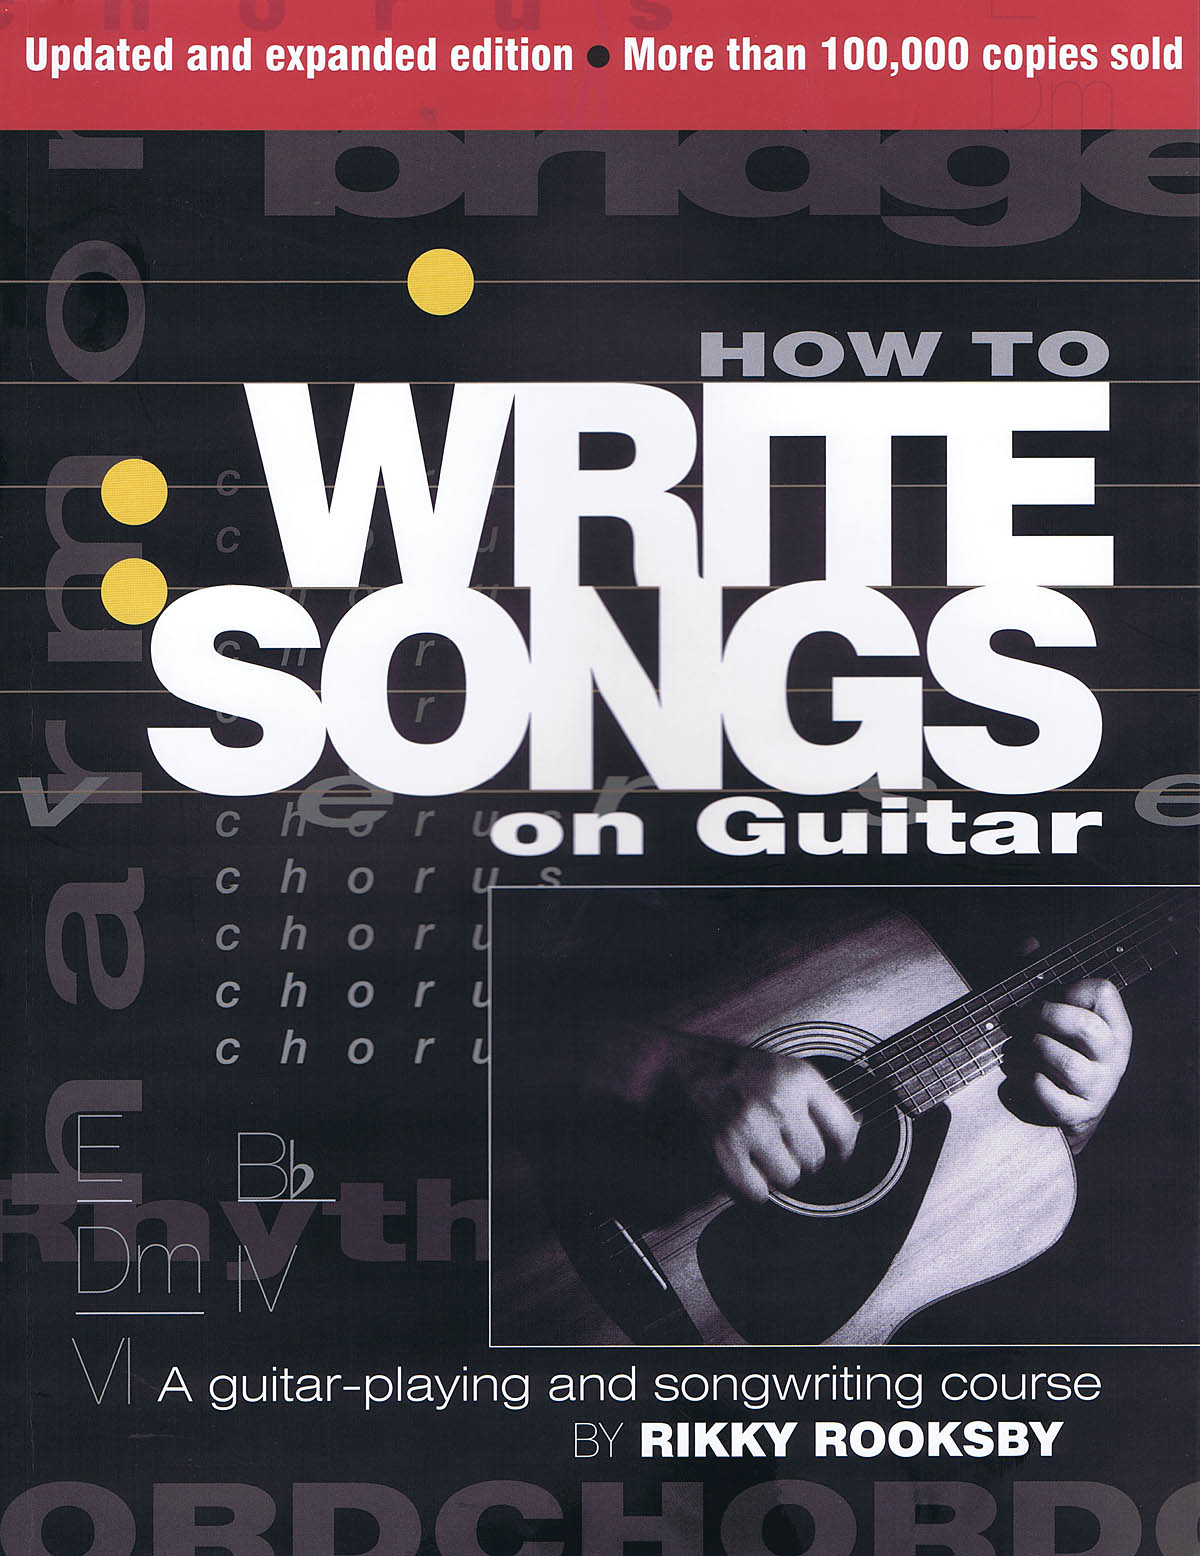 How To Write Songs On Guitar - Second Edition: Reference Books: Reference